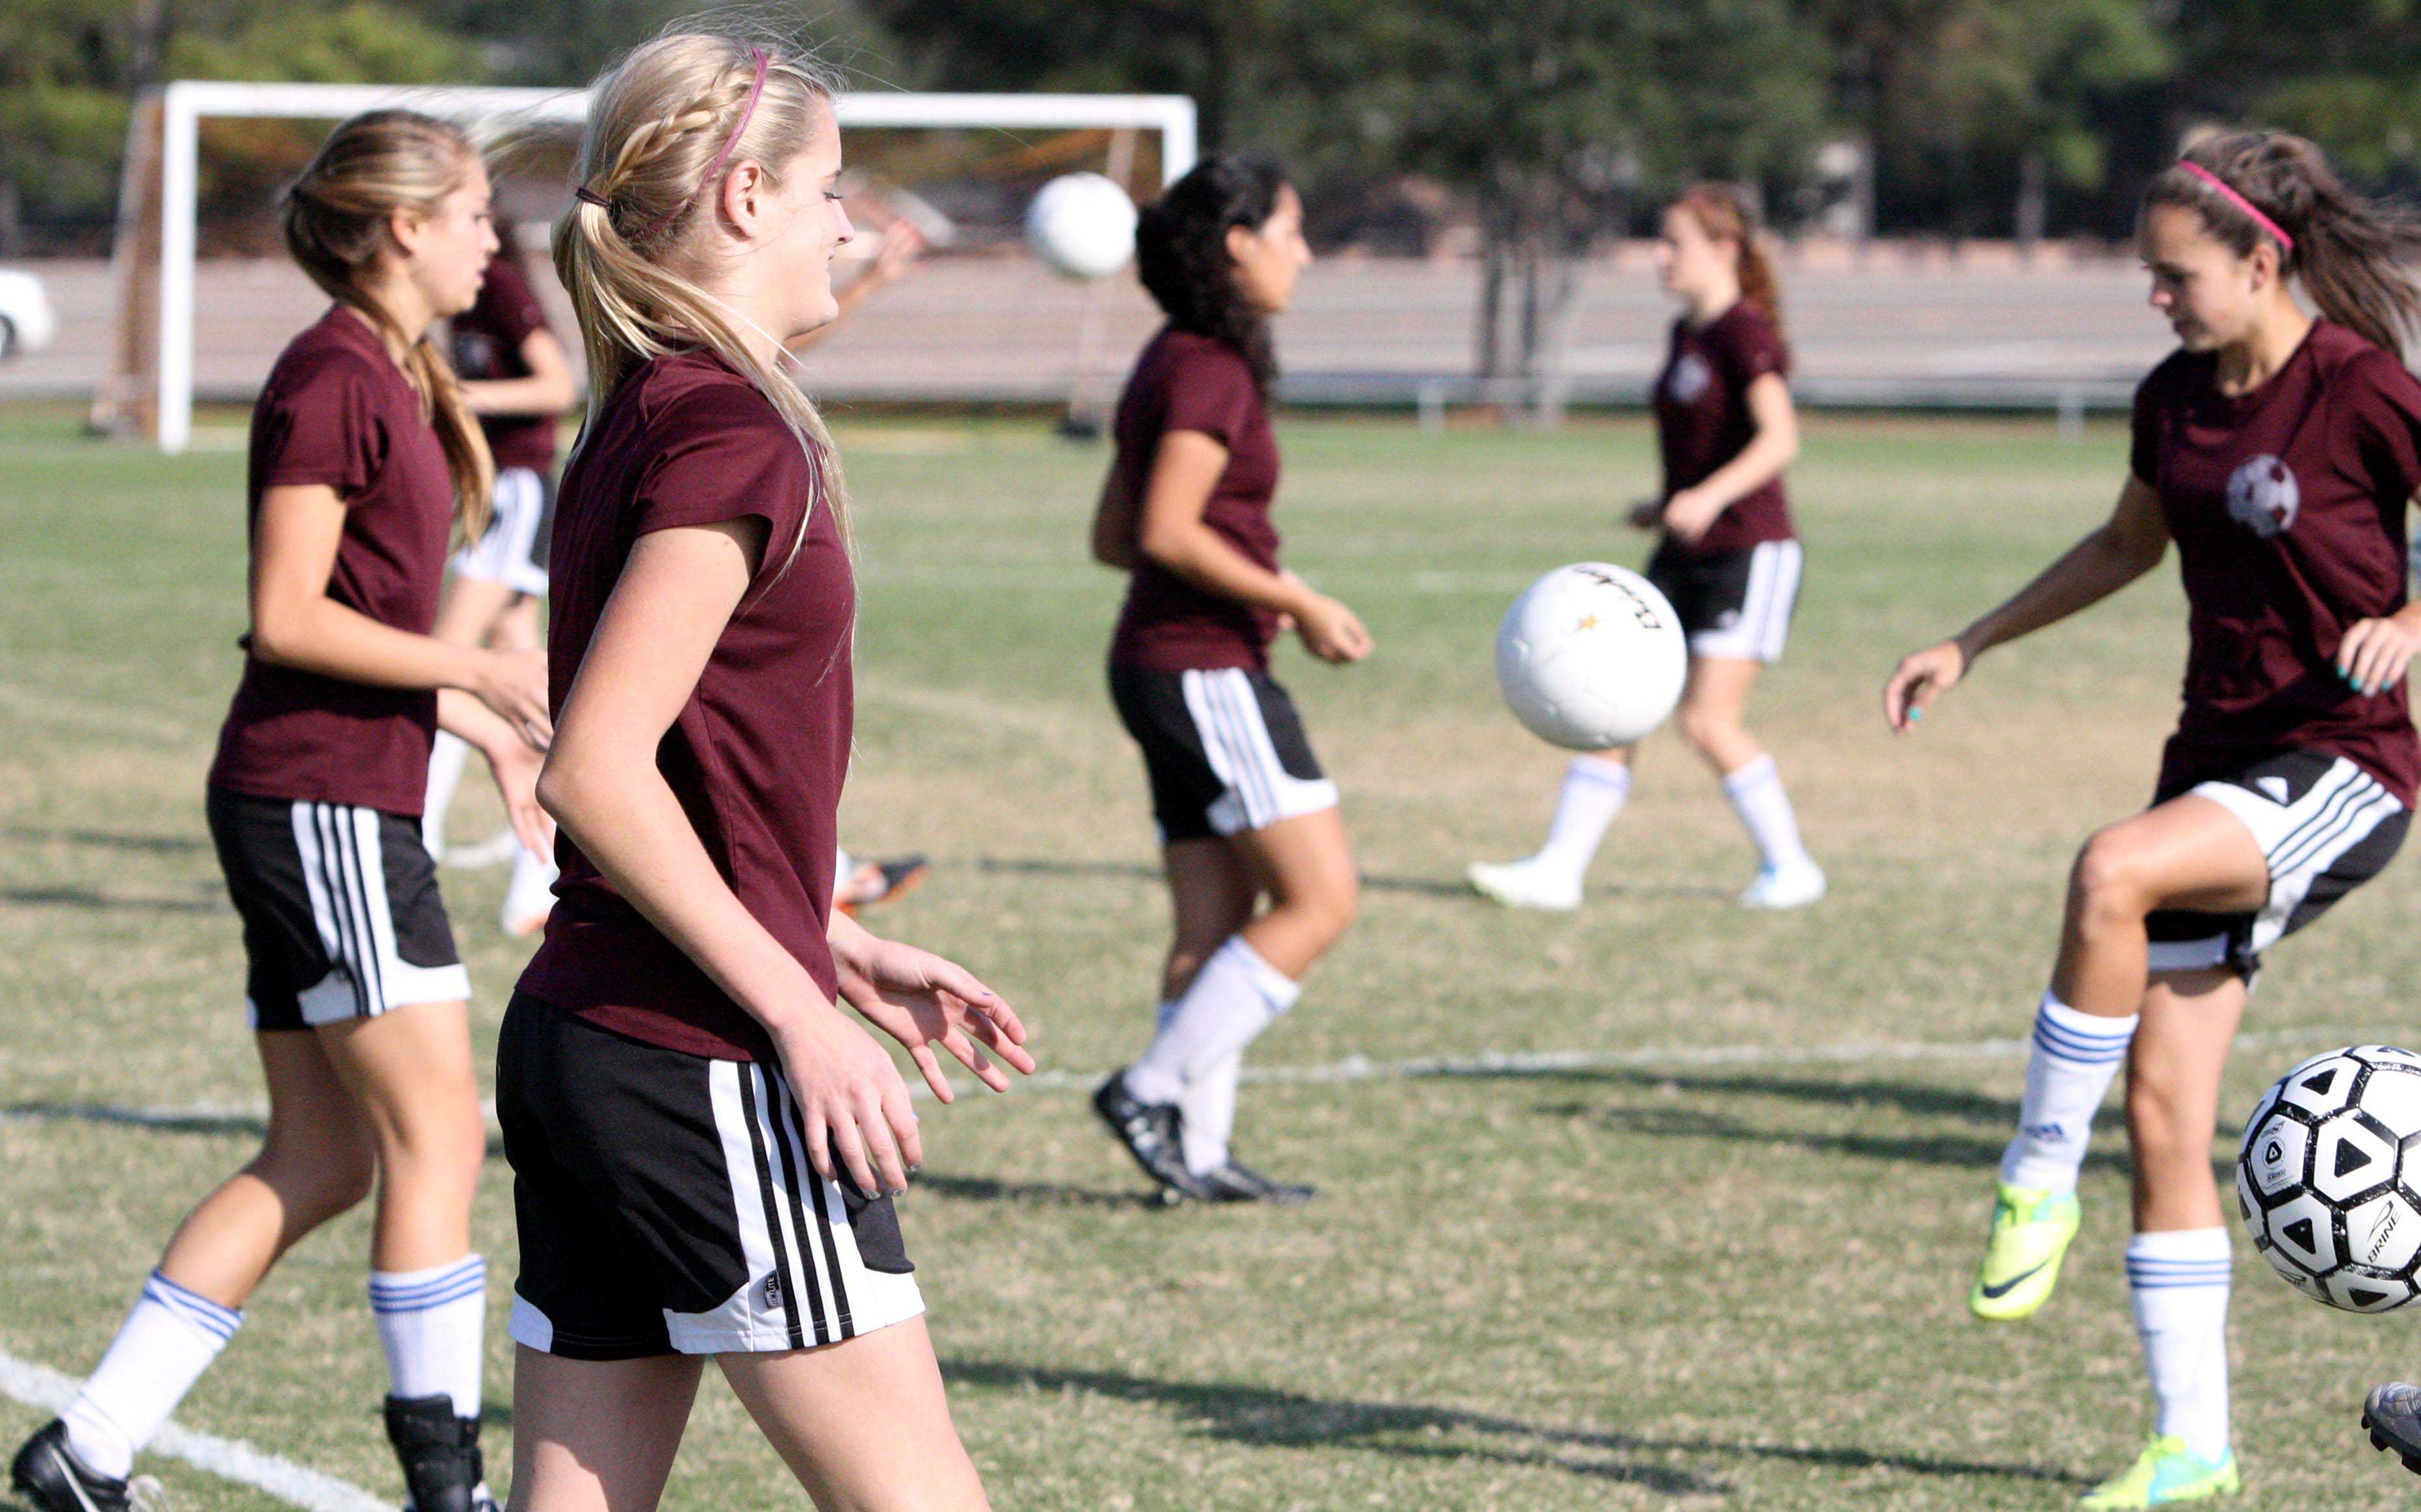 Varsity girls soccer practicing for the first game of the season against Lamar Jan. 13, 2012